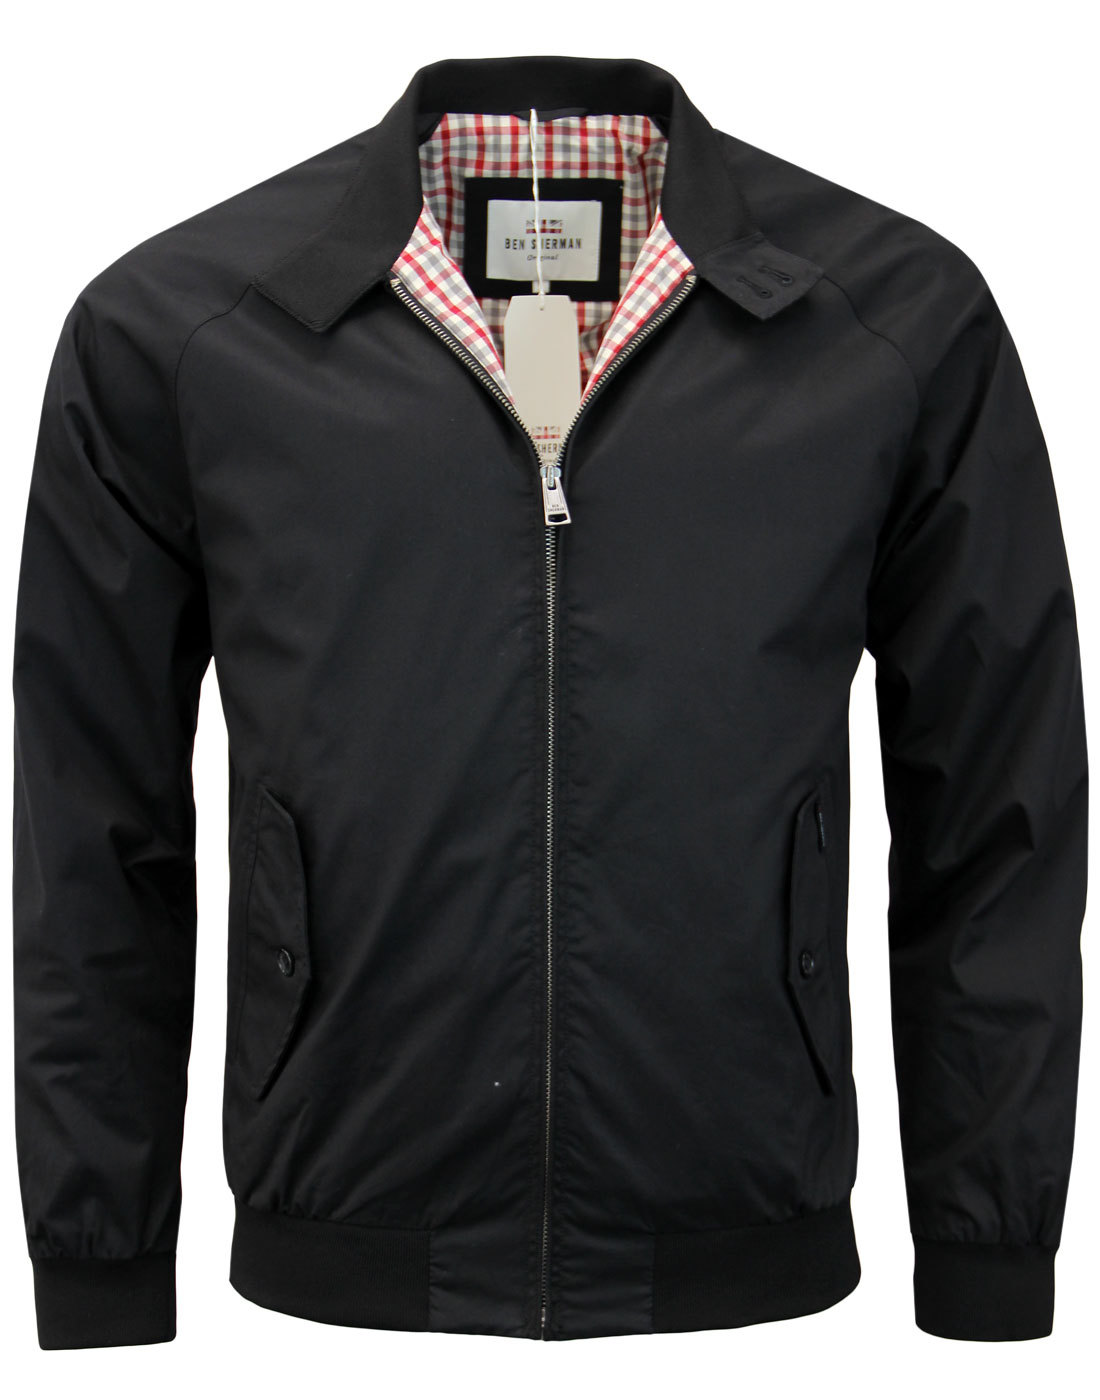 BEN SHERMAN 60s Mod Retro Harrington Jacket BLACK